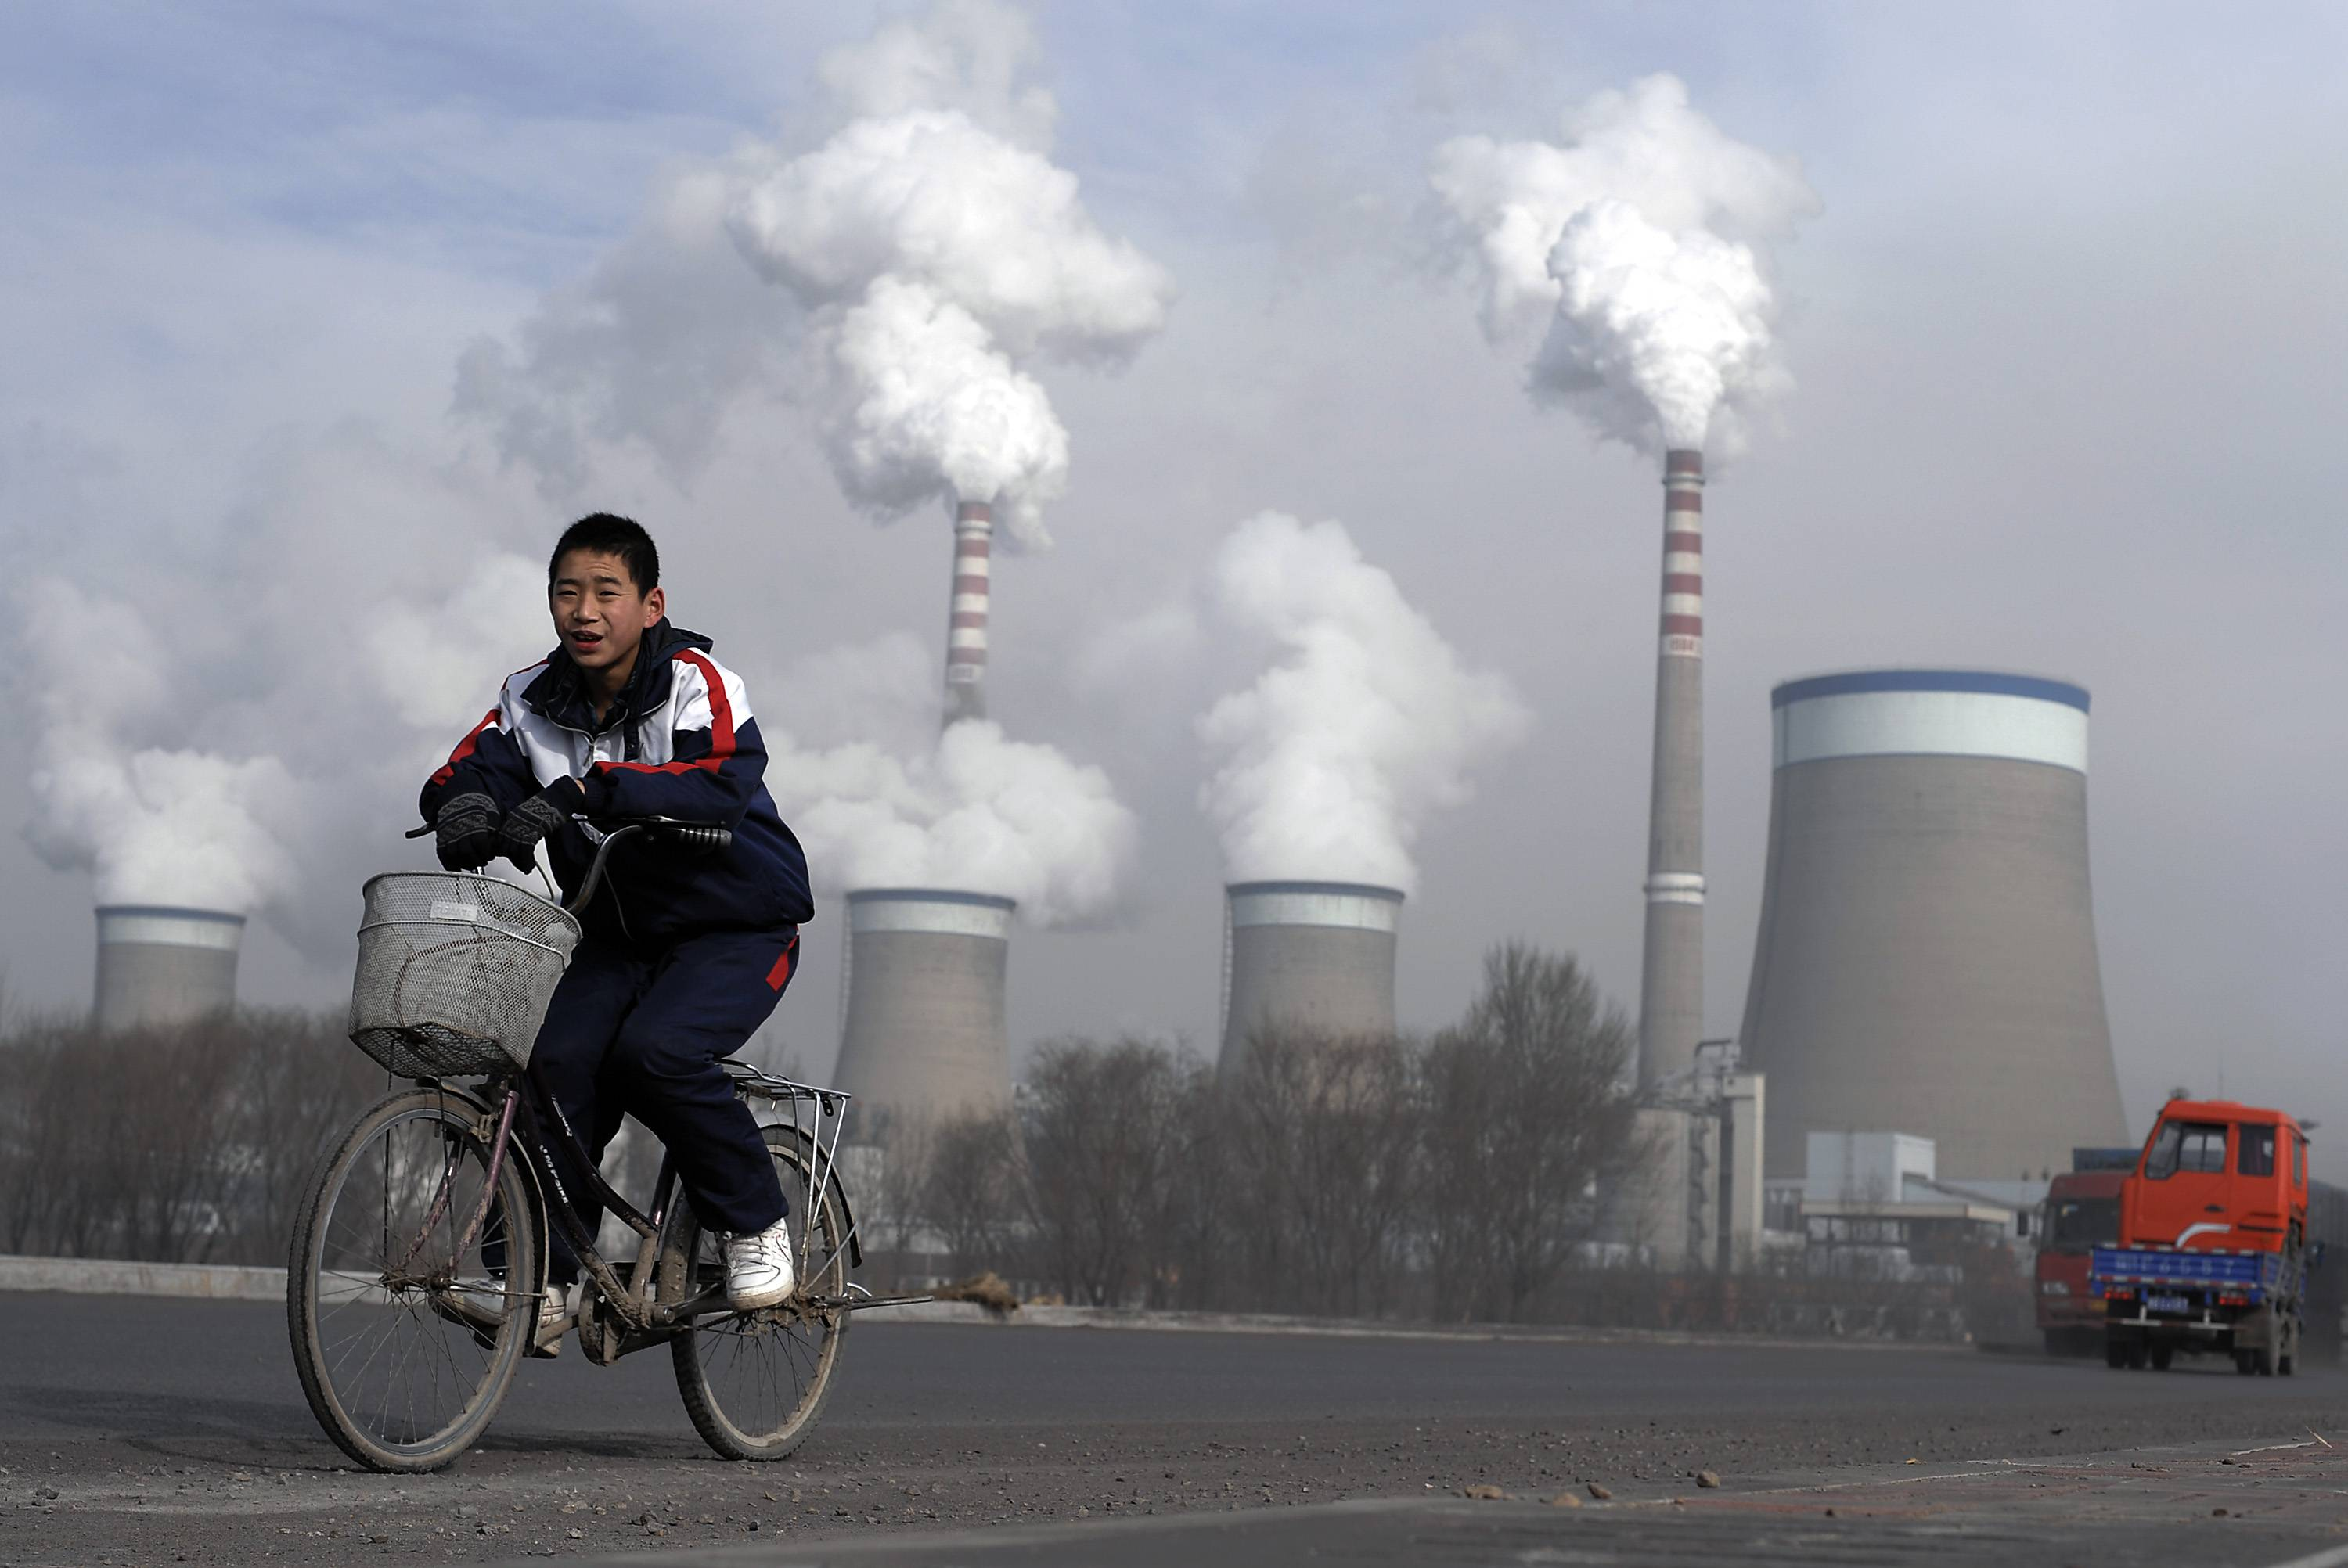 A boy cycles past cooling towers of a coal-fired power plant in Dadong, Shanxi province, China. China, the biggest emitter of greenhouse gases, has promised to curb its output but with its economy slowing and leaders under pressure to generate jobs, it has resisted binding limits.